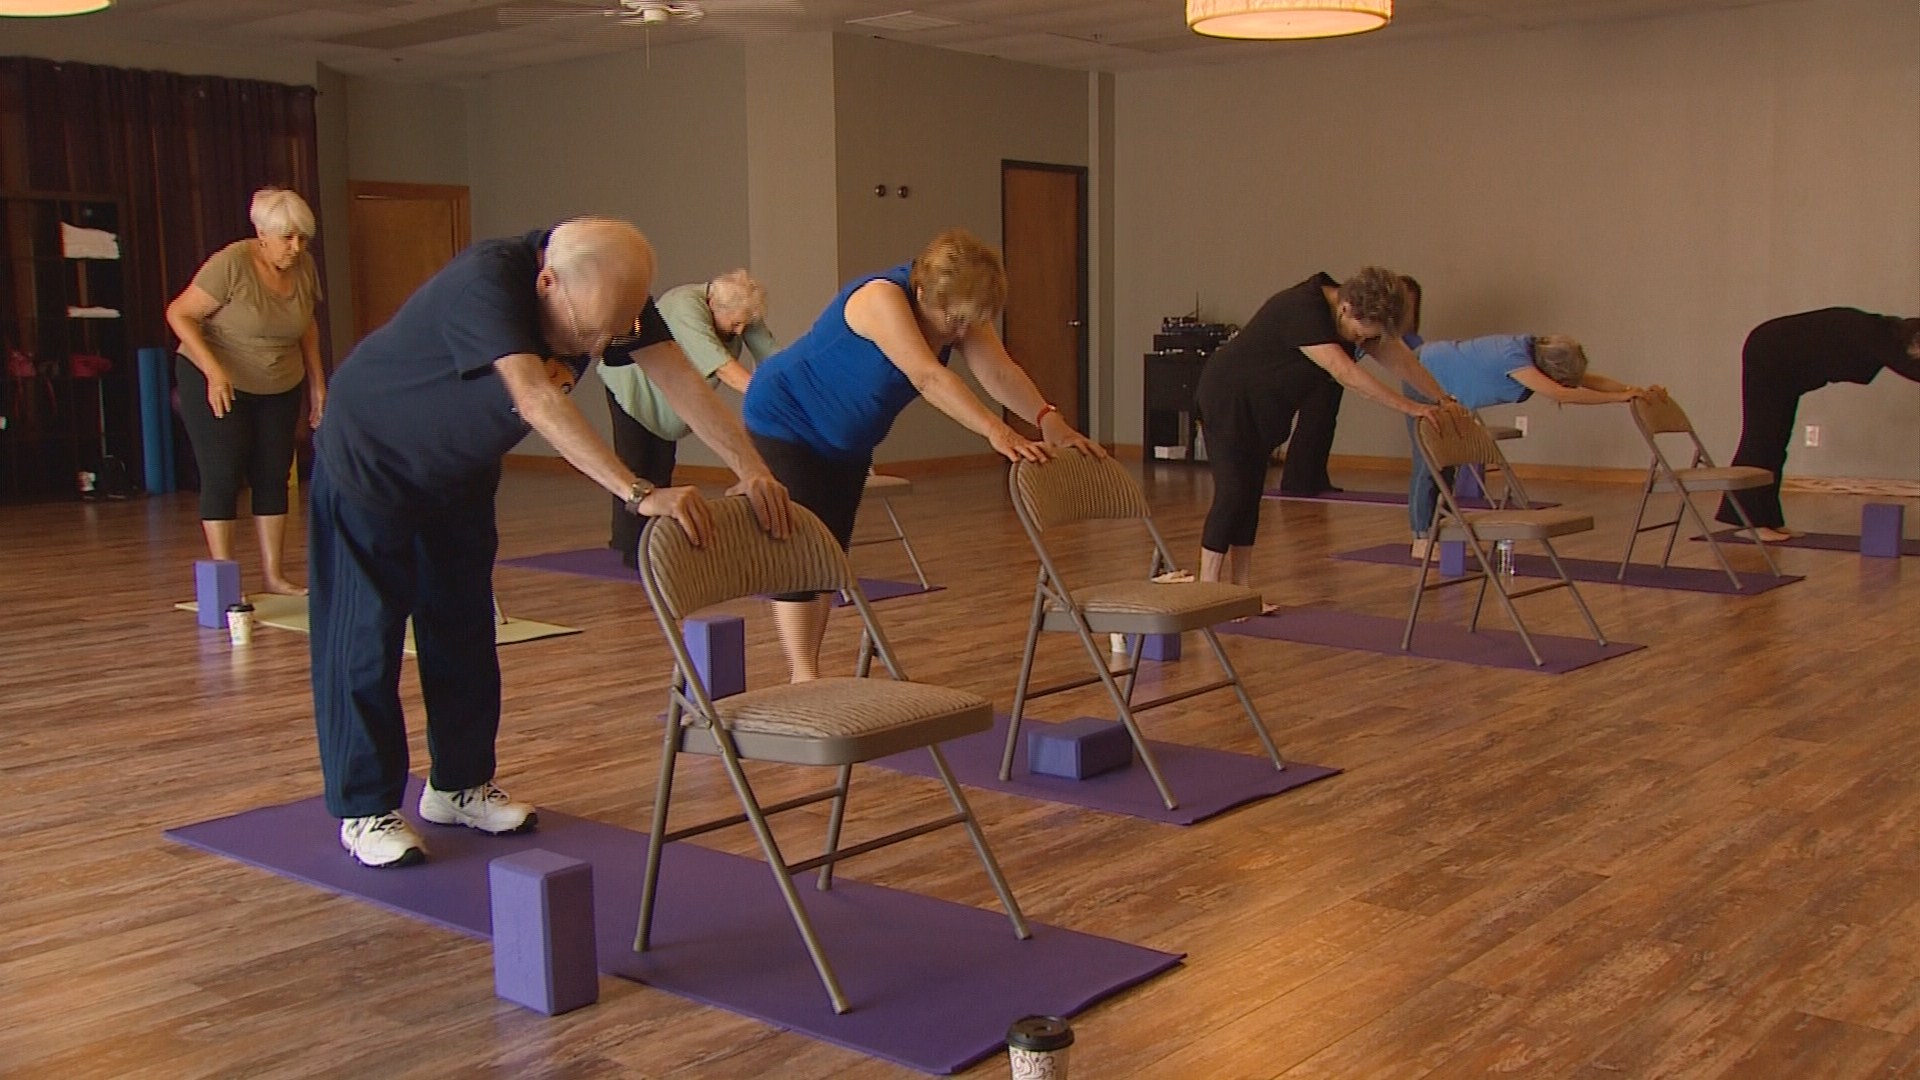 Chair yoga elderly - Chair Yoga Elderly 8